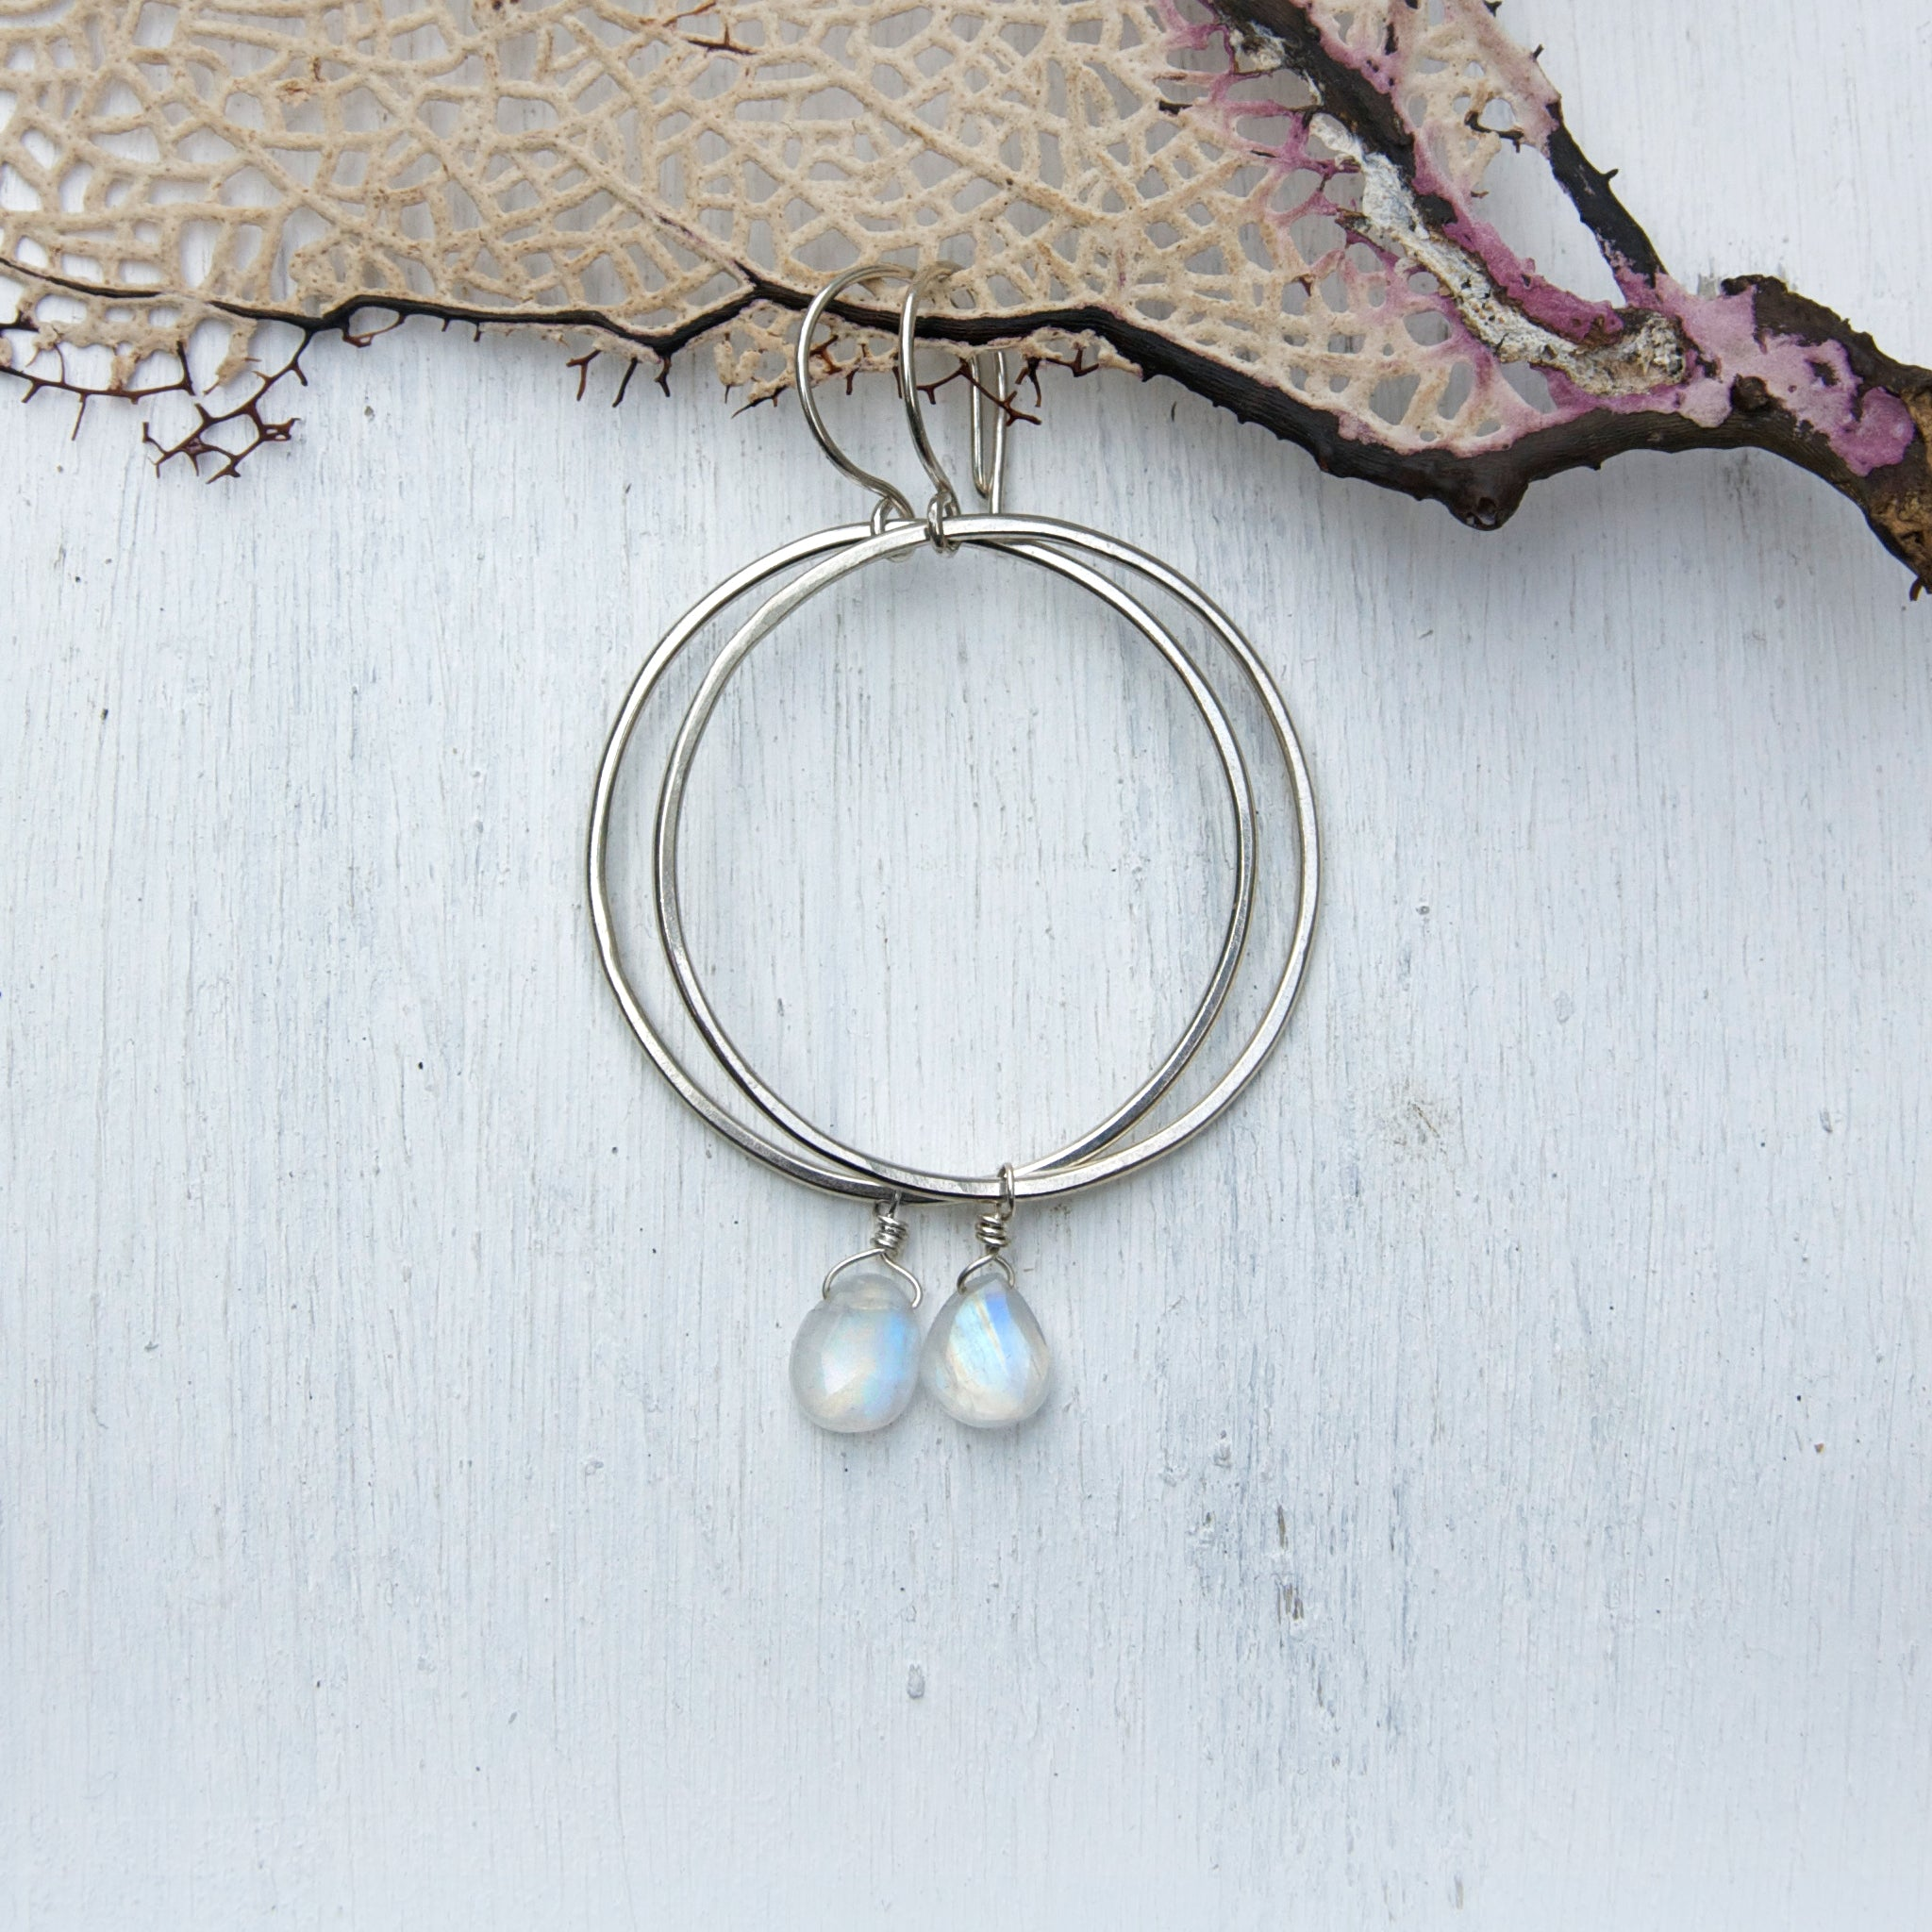 Organic-Handforged-Sterling-Silver-Hoops-With-Flashy-Rainbow-Moonstone